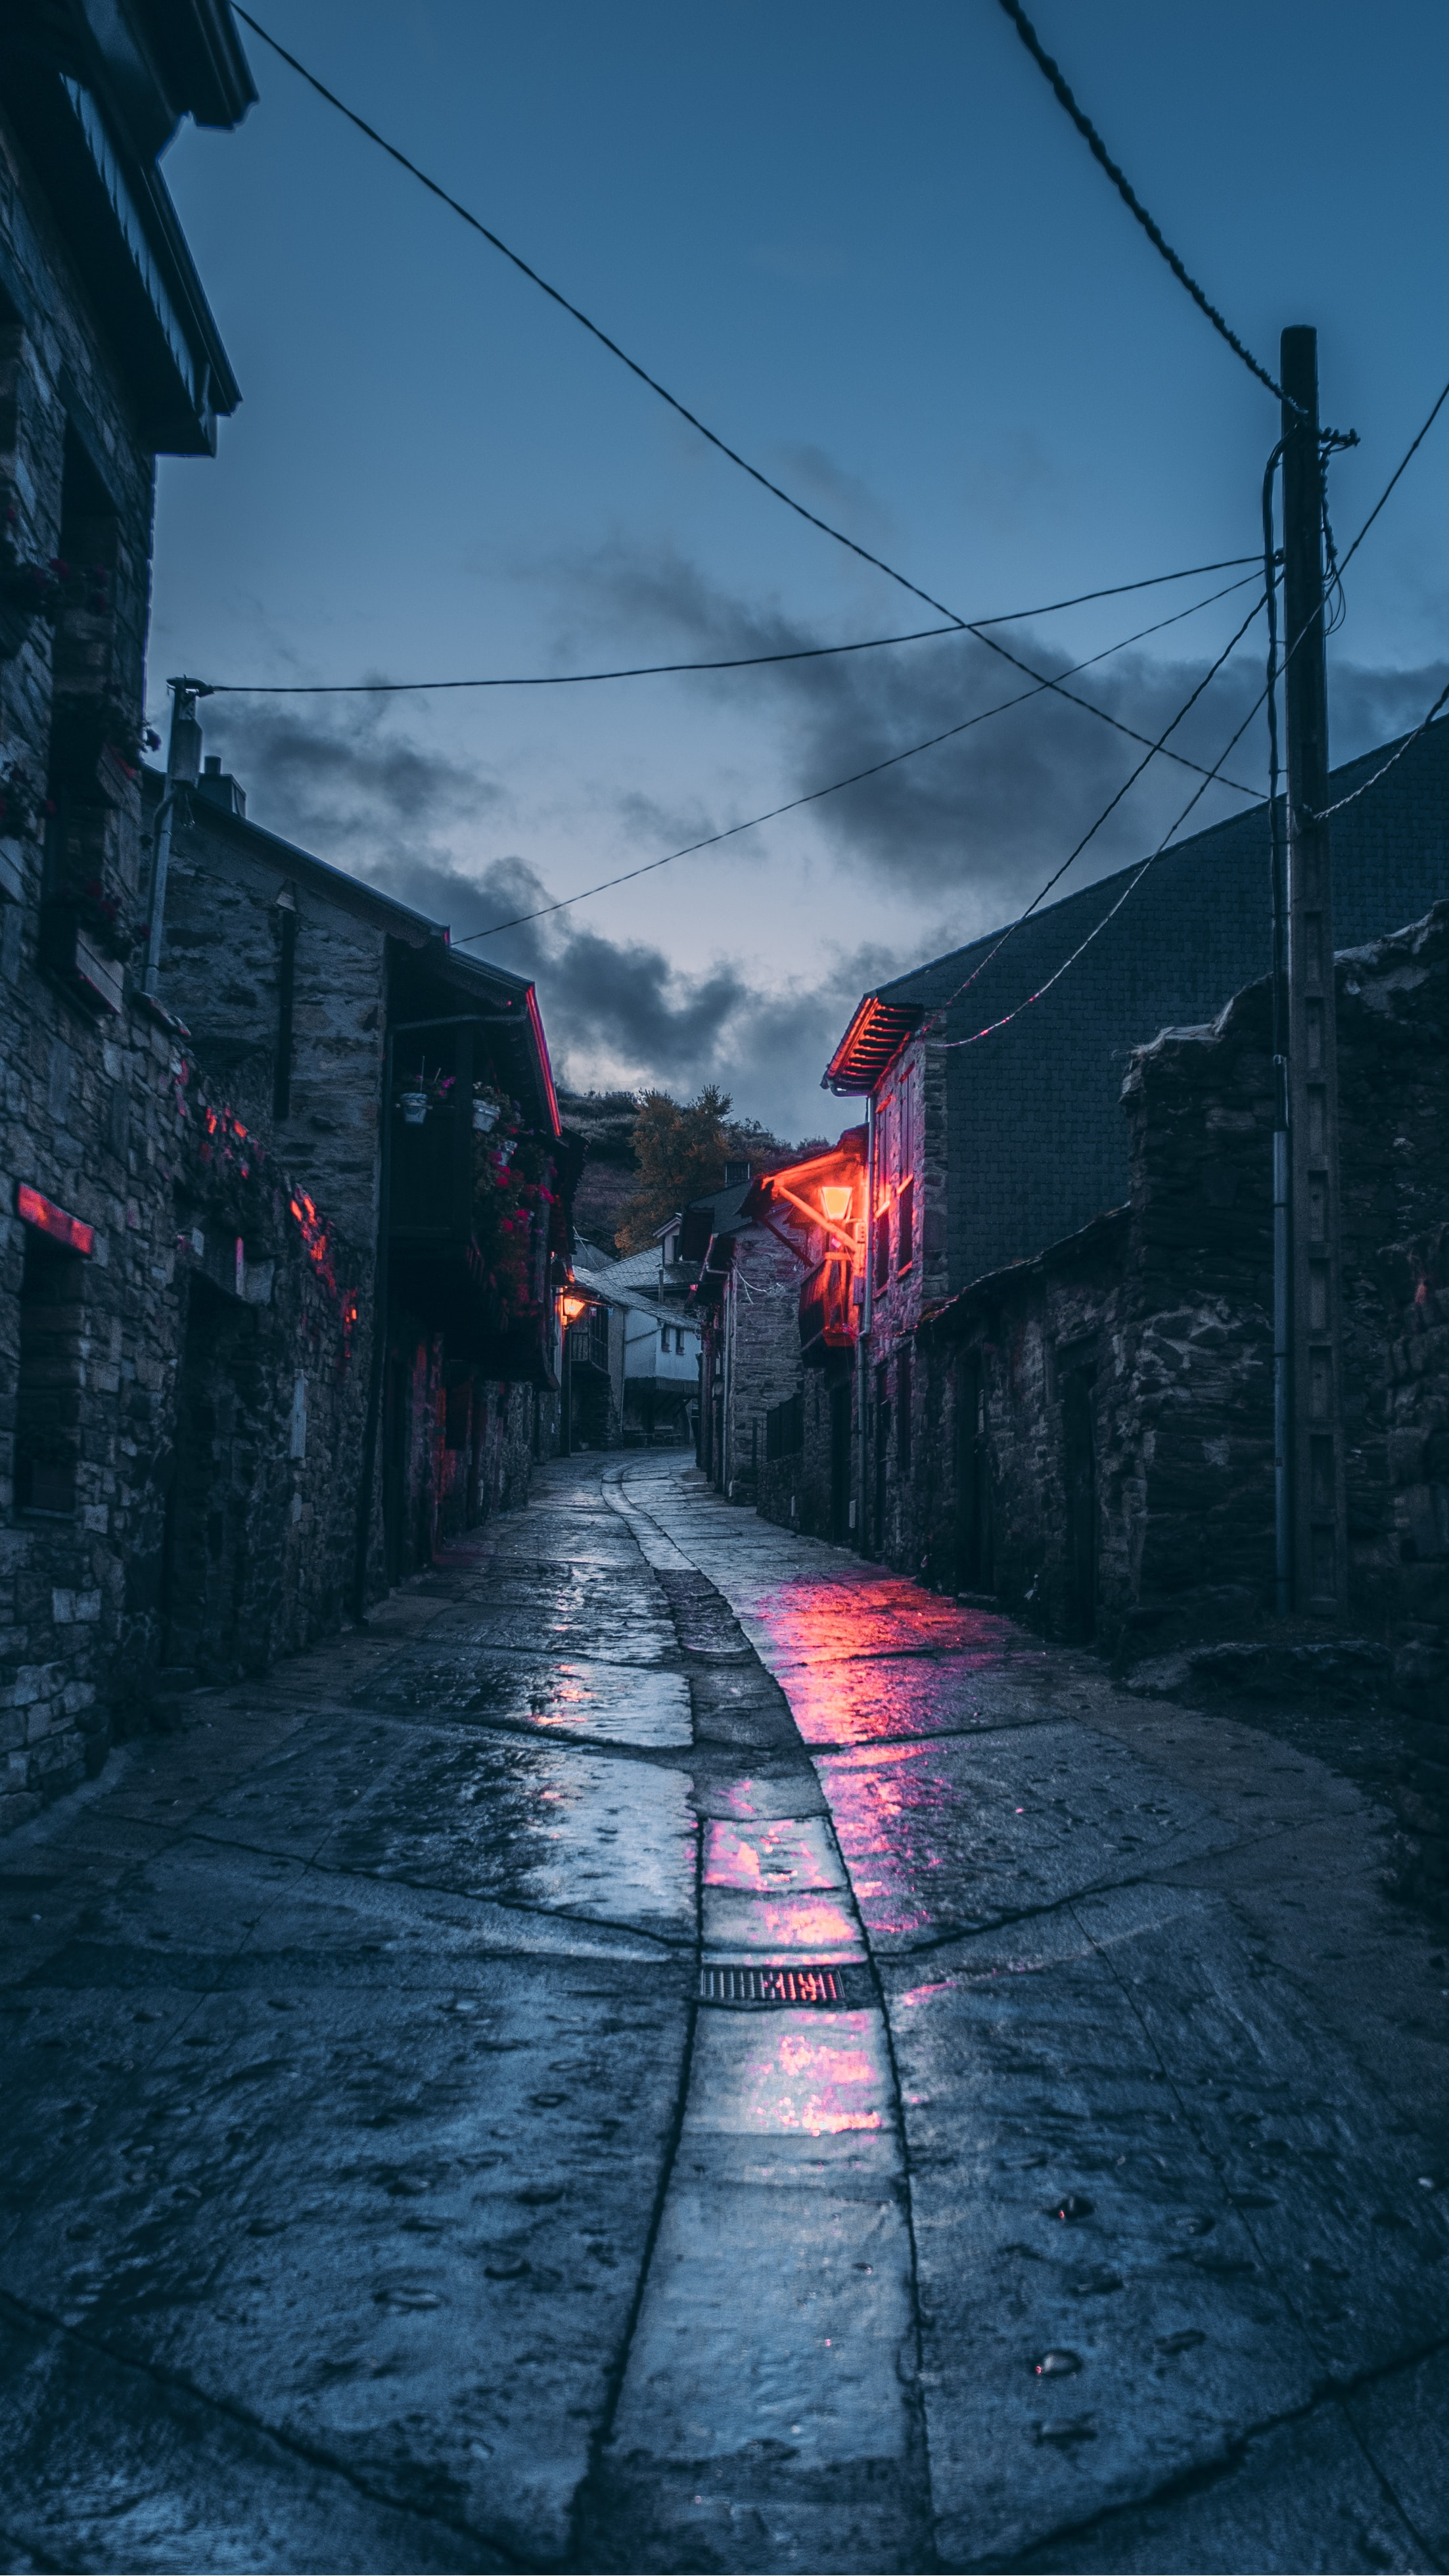 Long alley, wet paving slabs reflecting eerie blue and red lights